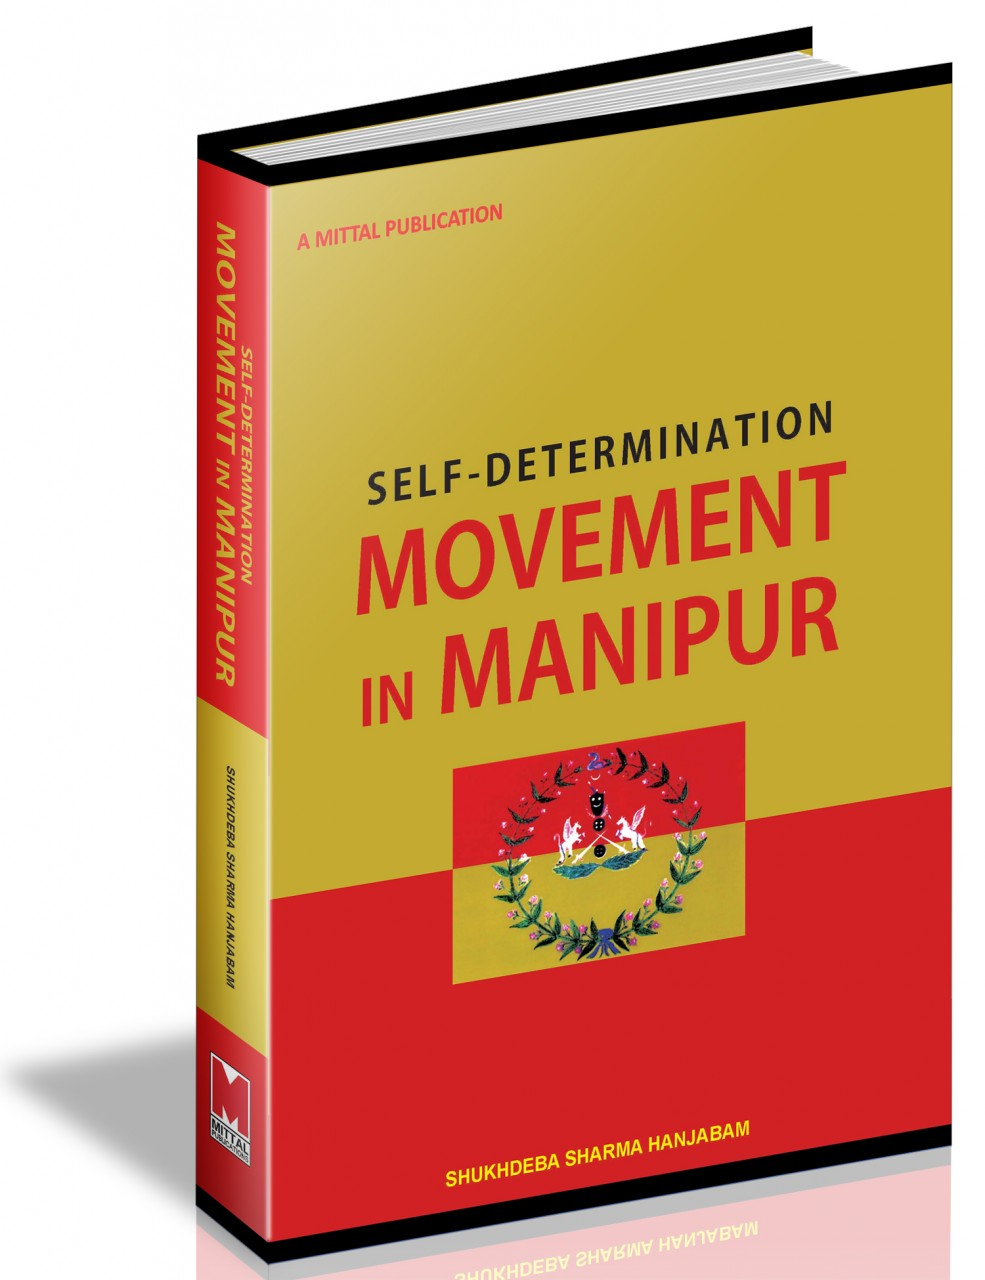 Self-Determination Movement in Manipur